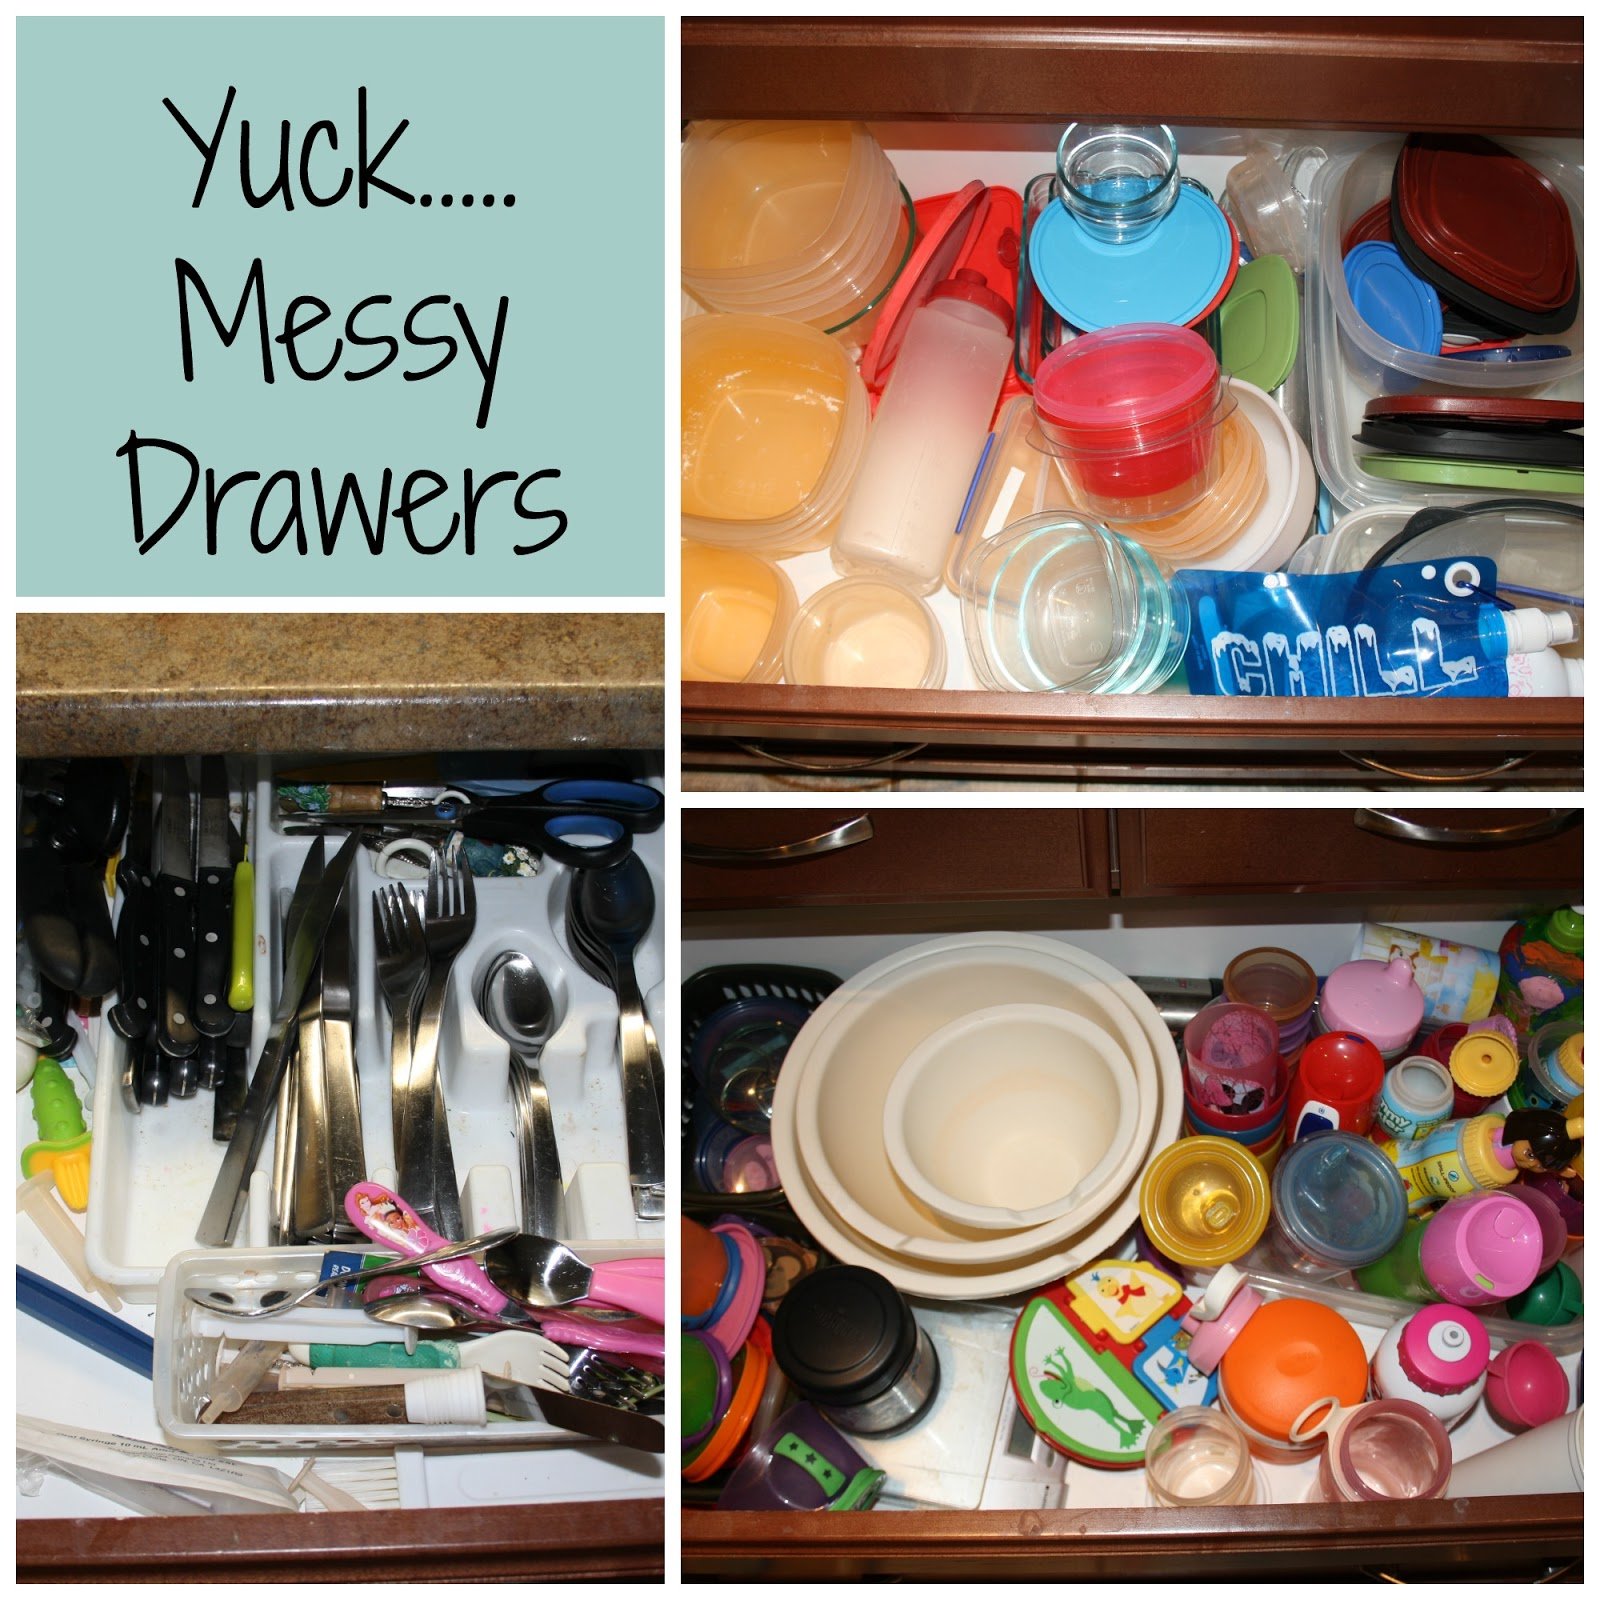 Messy Kitchen Drawer: The First Thing I Did Was Clear Things Out